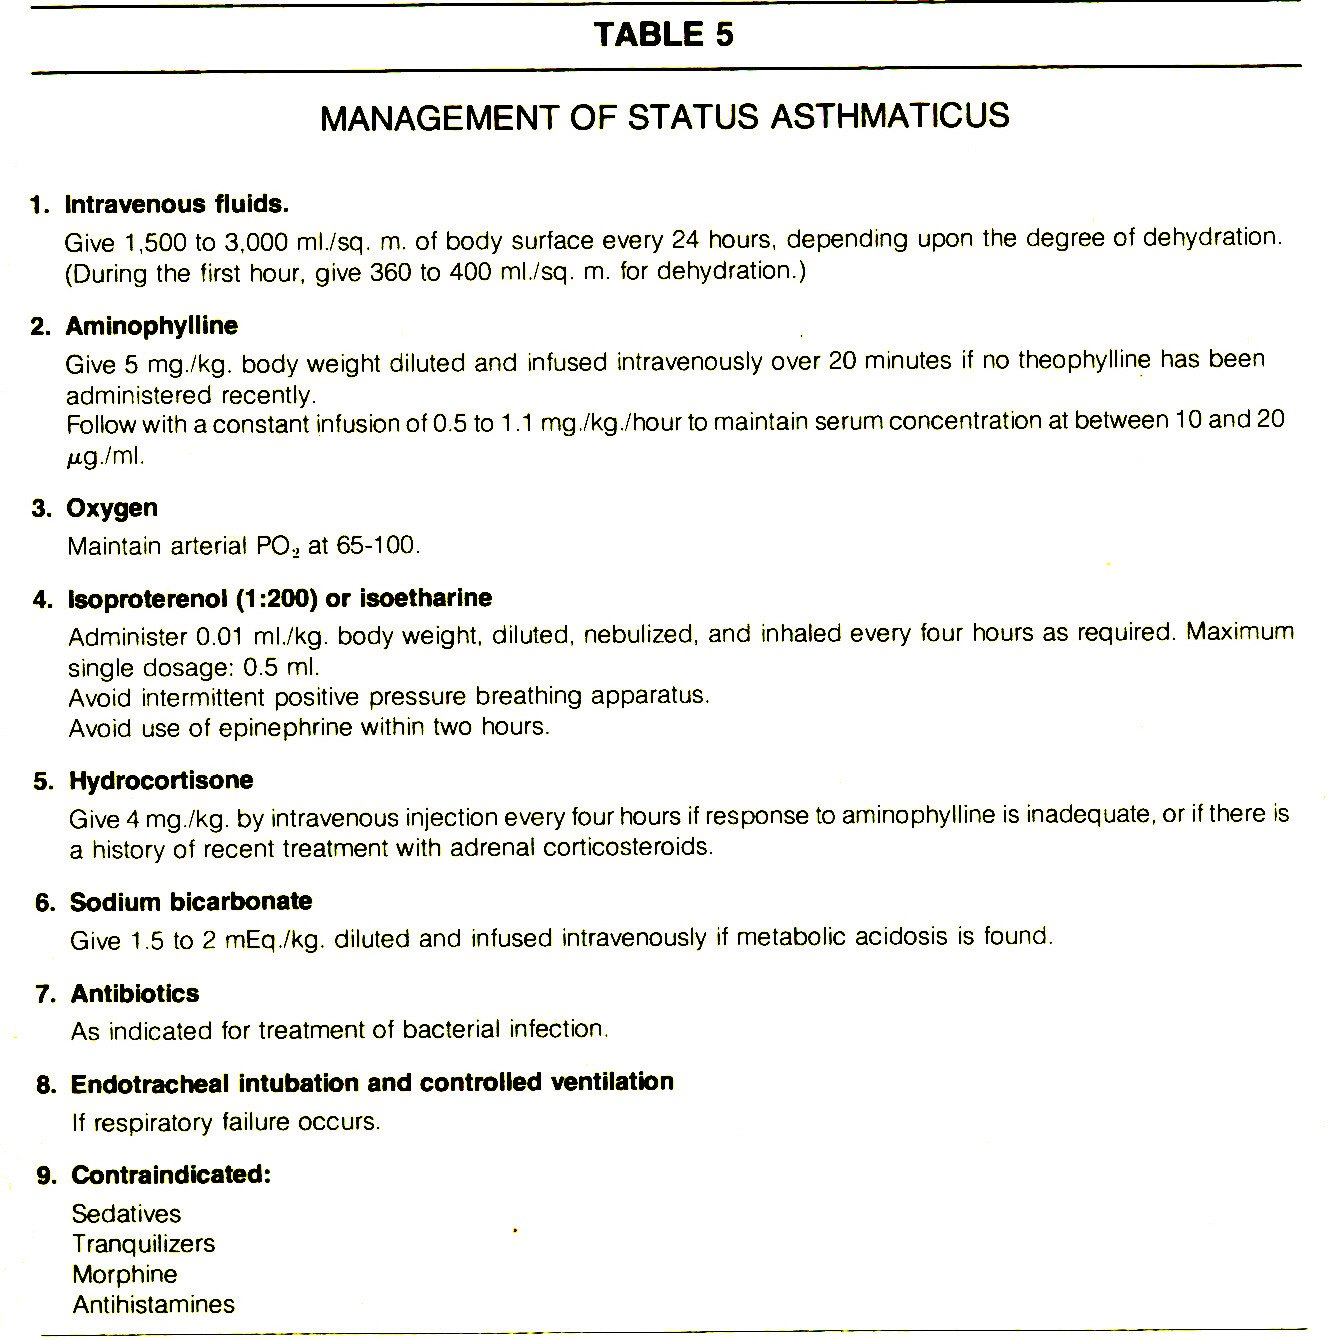 TABLE 5MANAGEMENT OF STATUS ASTHMATICUS